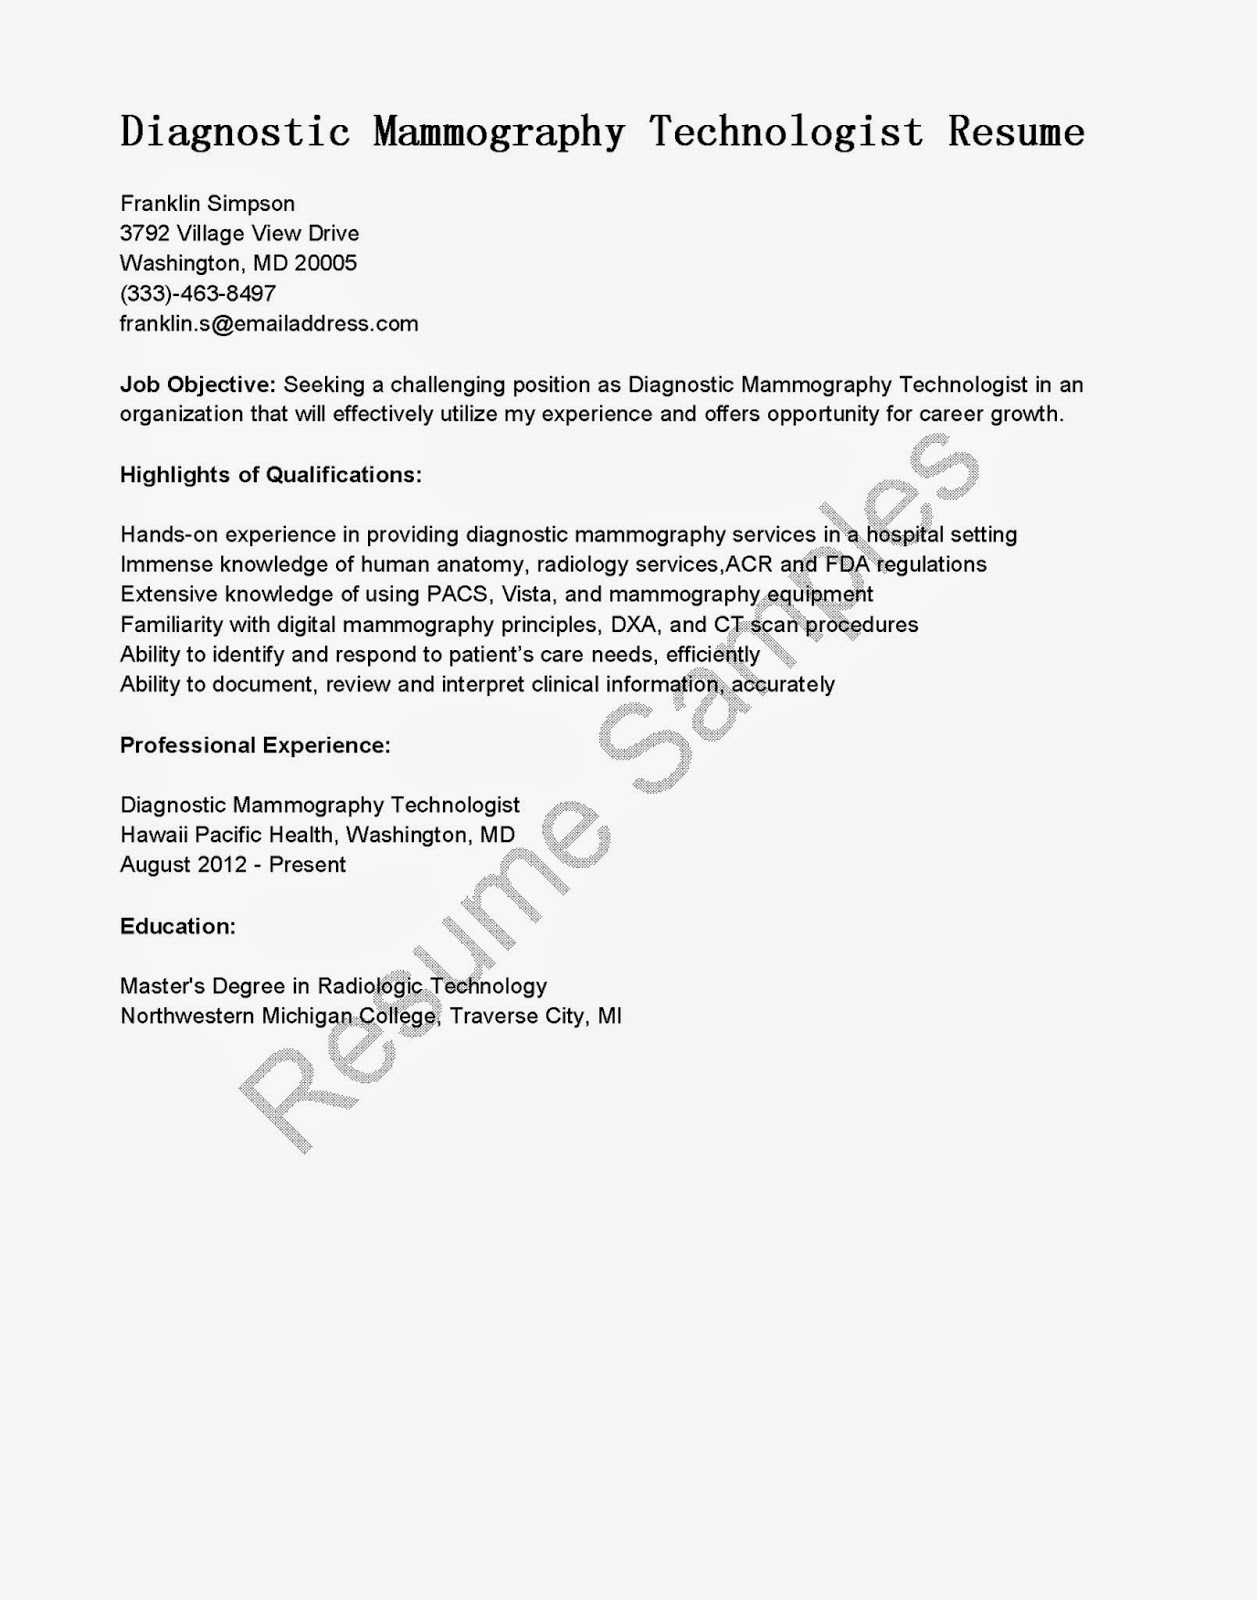 Free Sample Resume Template Cover Letter And Resume Resume Samples Diagnostic Mammography Technologist Resume